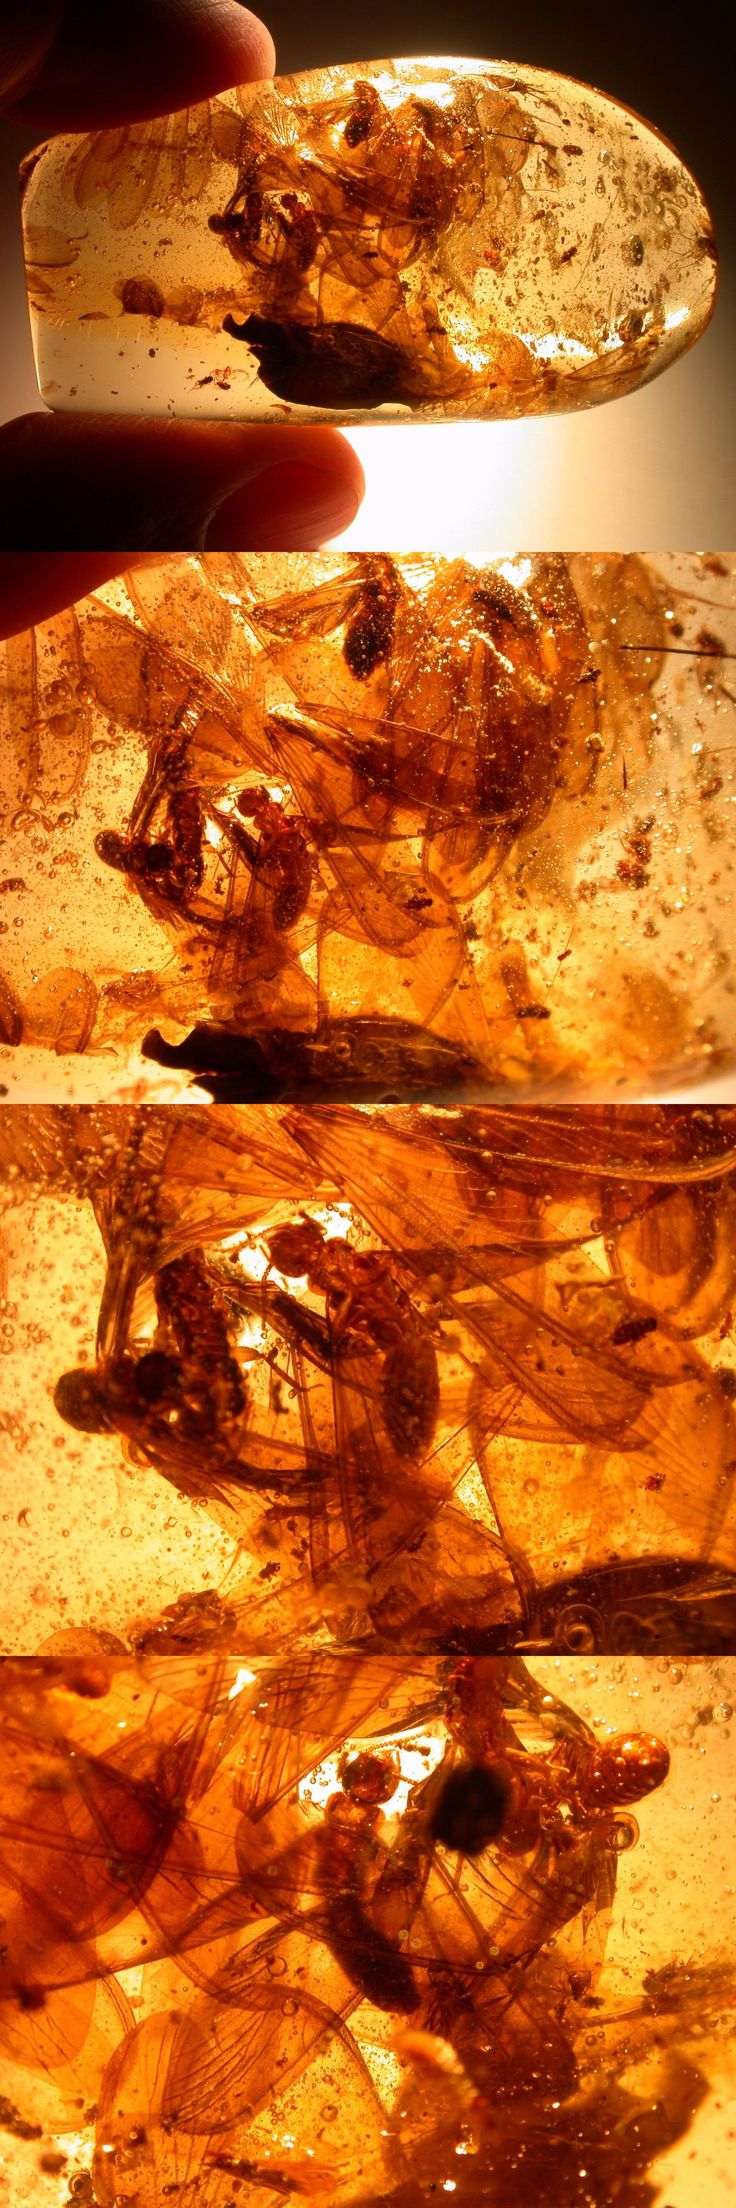 Amber 10191: Mass Of Termite Wings, Winged Termites, Flies, Spider In Colombian Copal Amber -> BUY IT NOW ONLY: $45.0 on eBay!